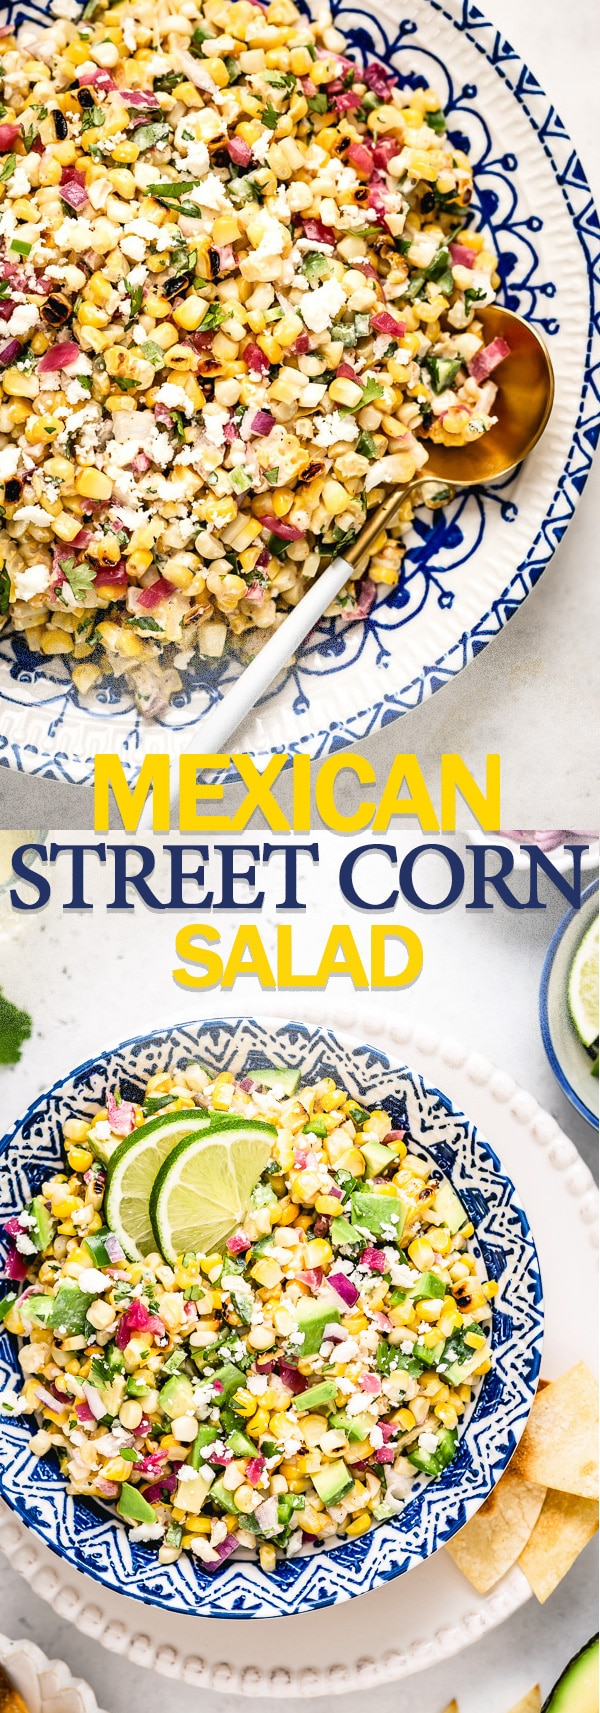 This Mexican Street Corn Salad recipe aka Esquites is tangy spicy and deliciously creamy Whether you cook the corn on the grill or in a skillet this easy Mexican corn sal...